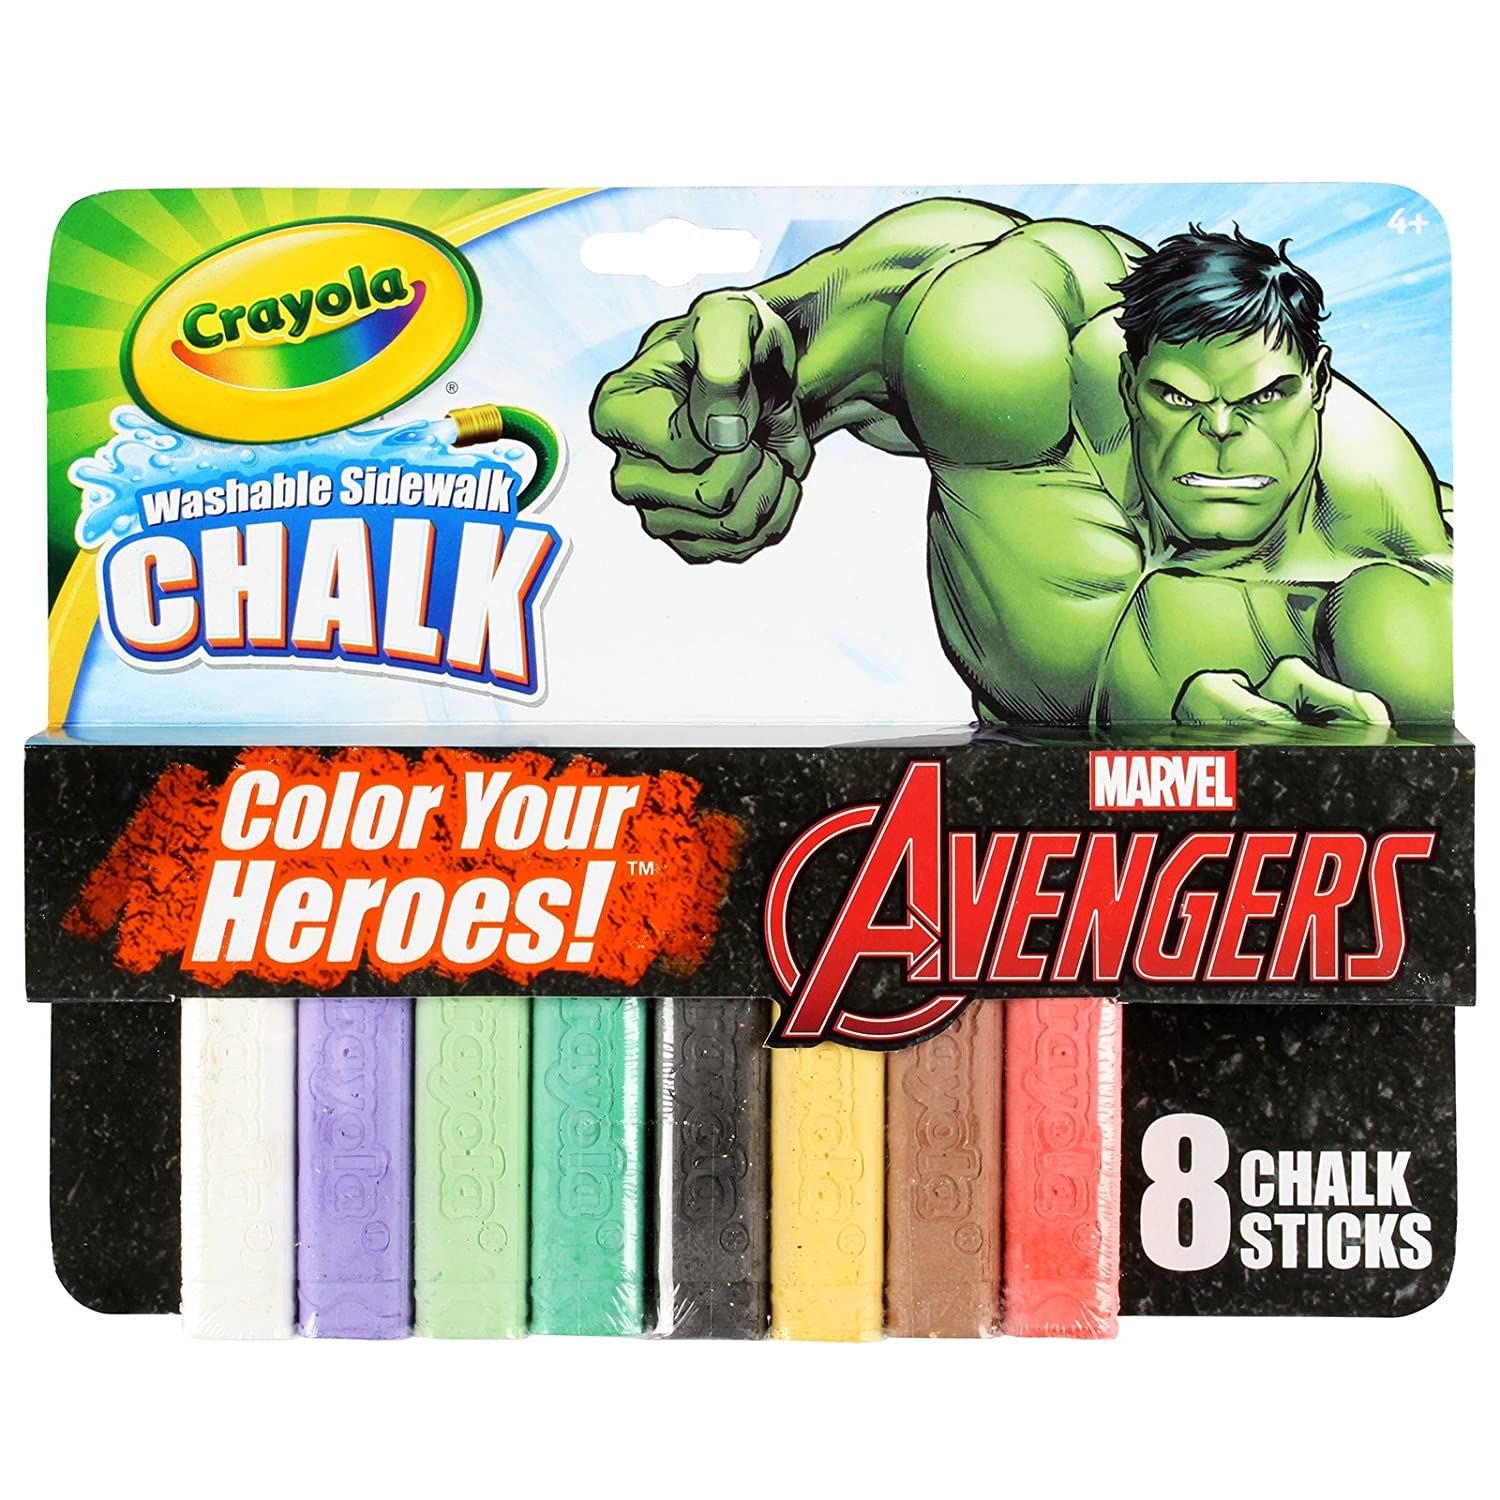 Crayola Washable Sidewalk Chalk Marvel Avengers Incredible Hulk Theme Pack 8 Count 03-5304